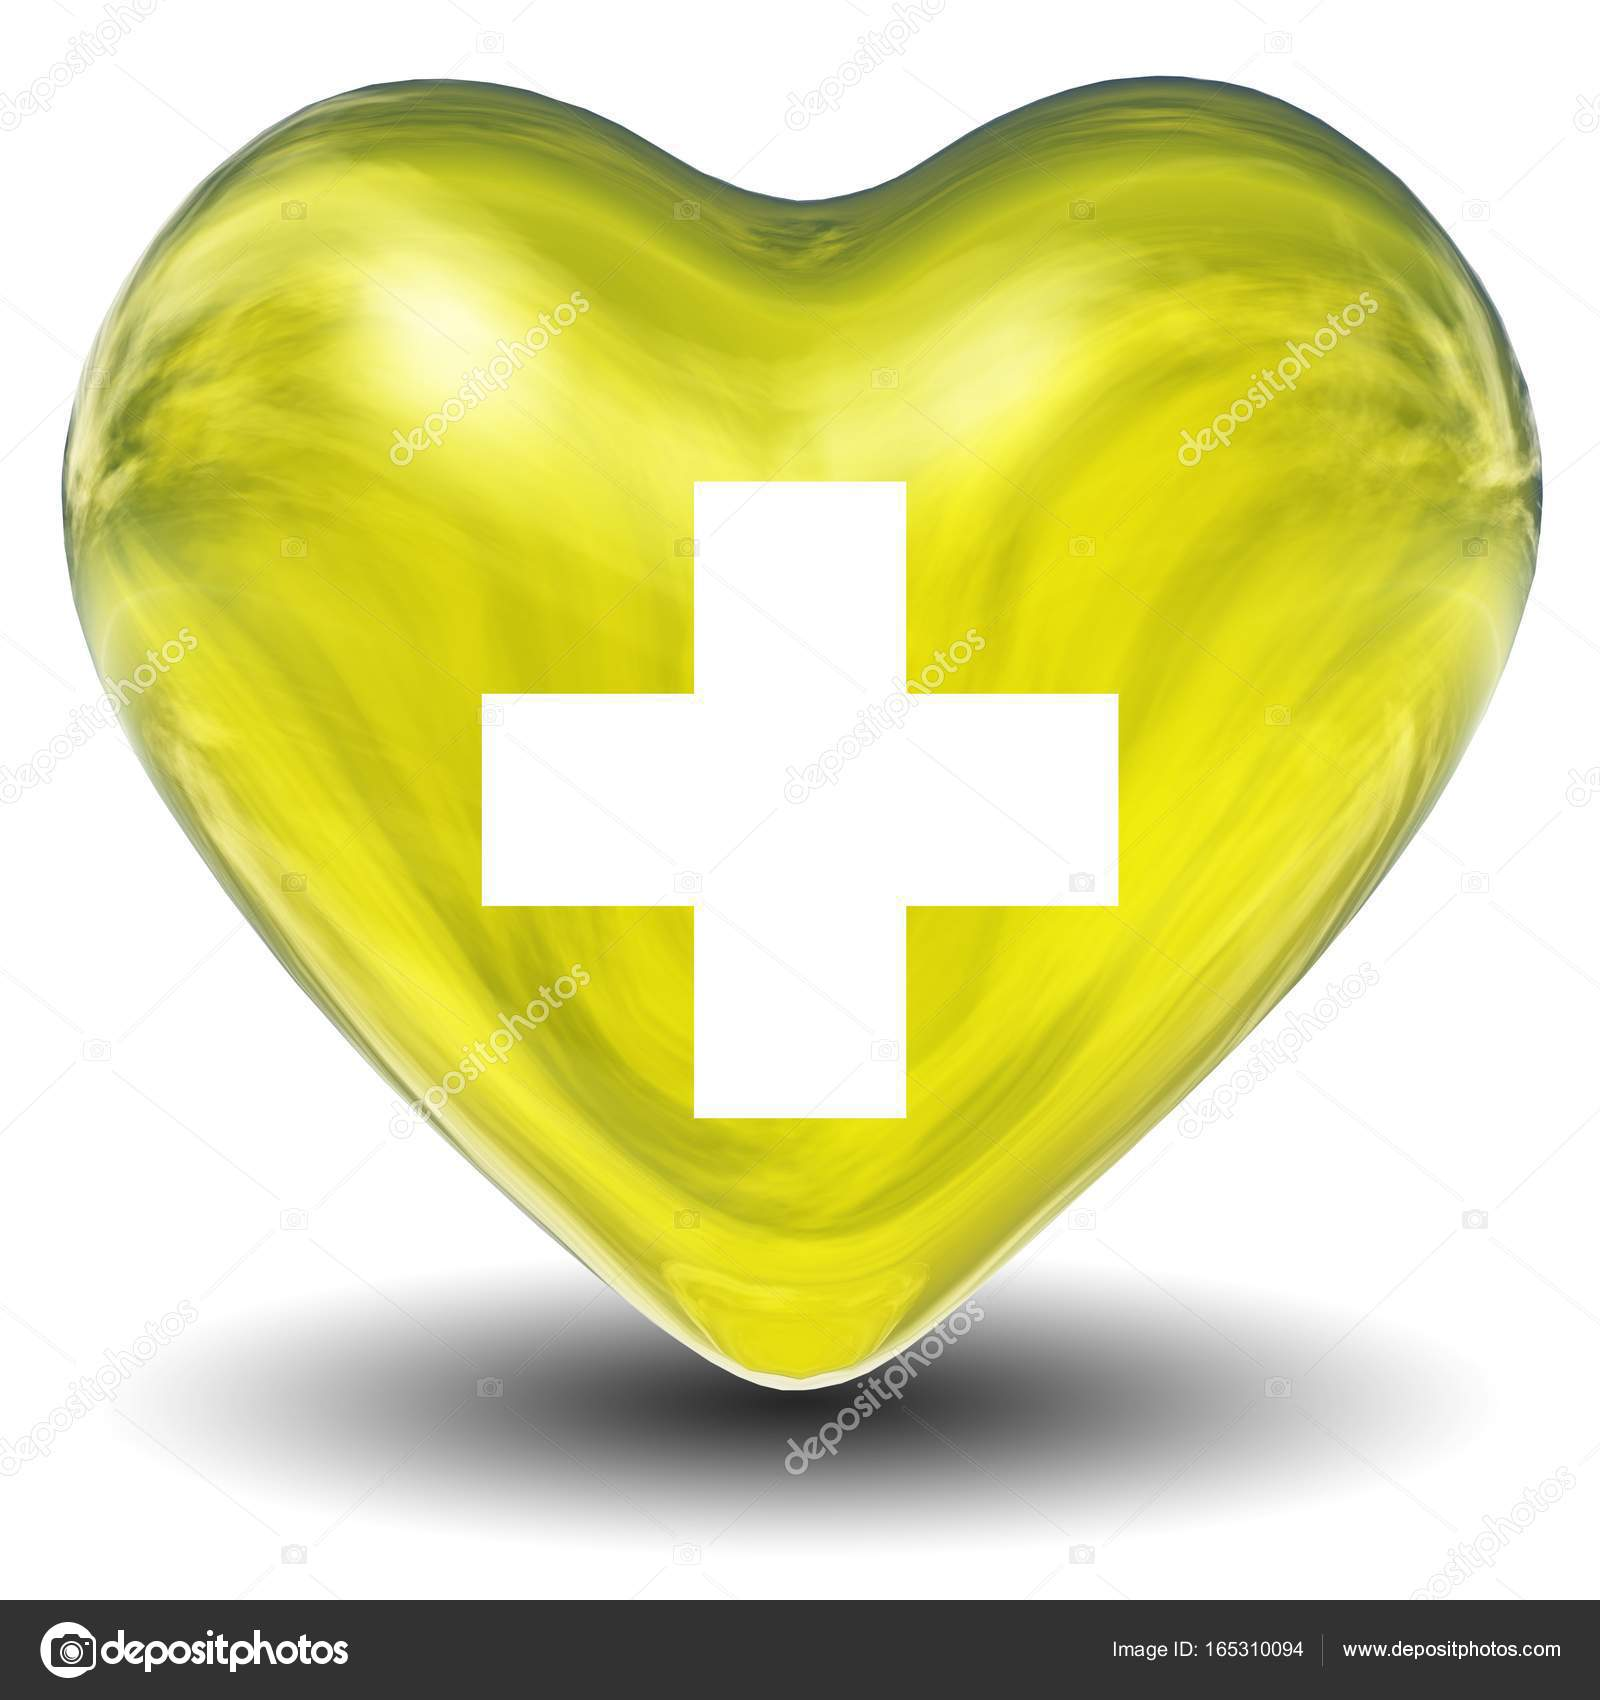 high resolution 3d heart with a cross sign or symbol isolated on